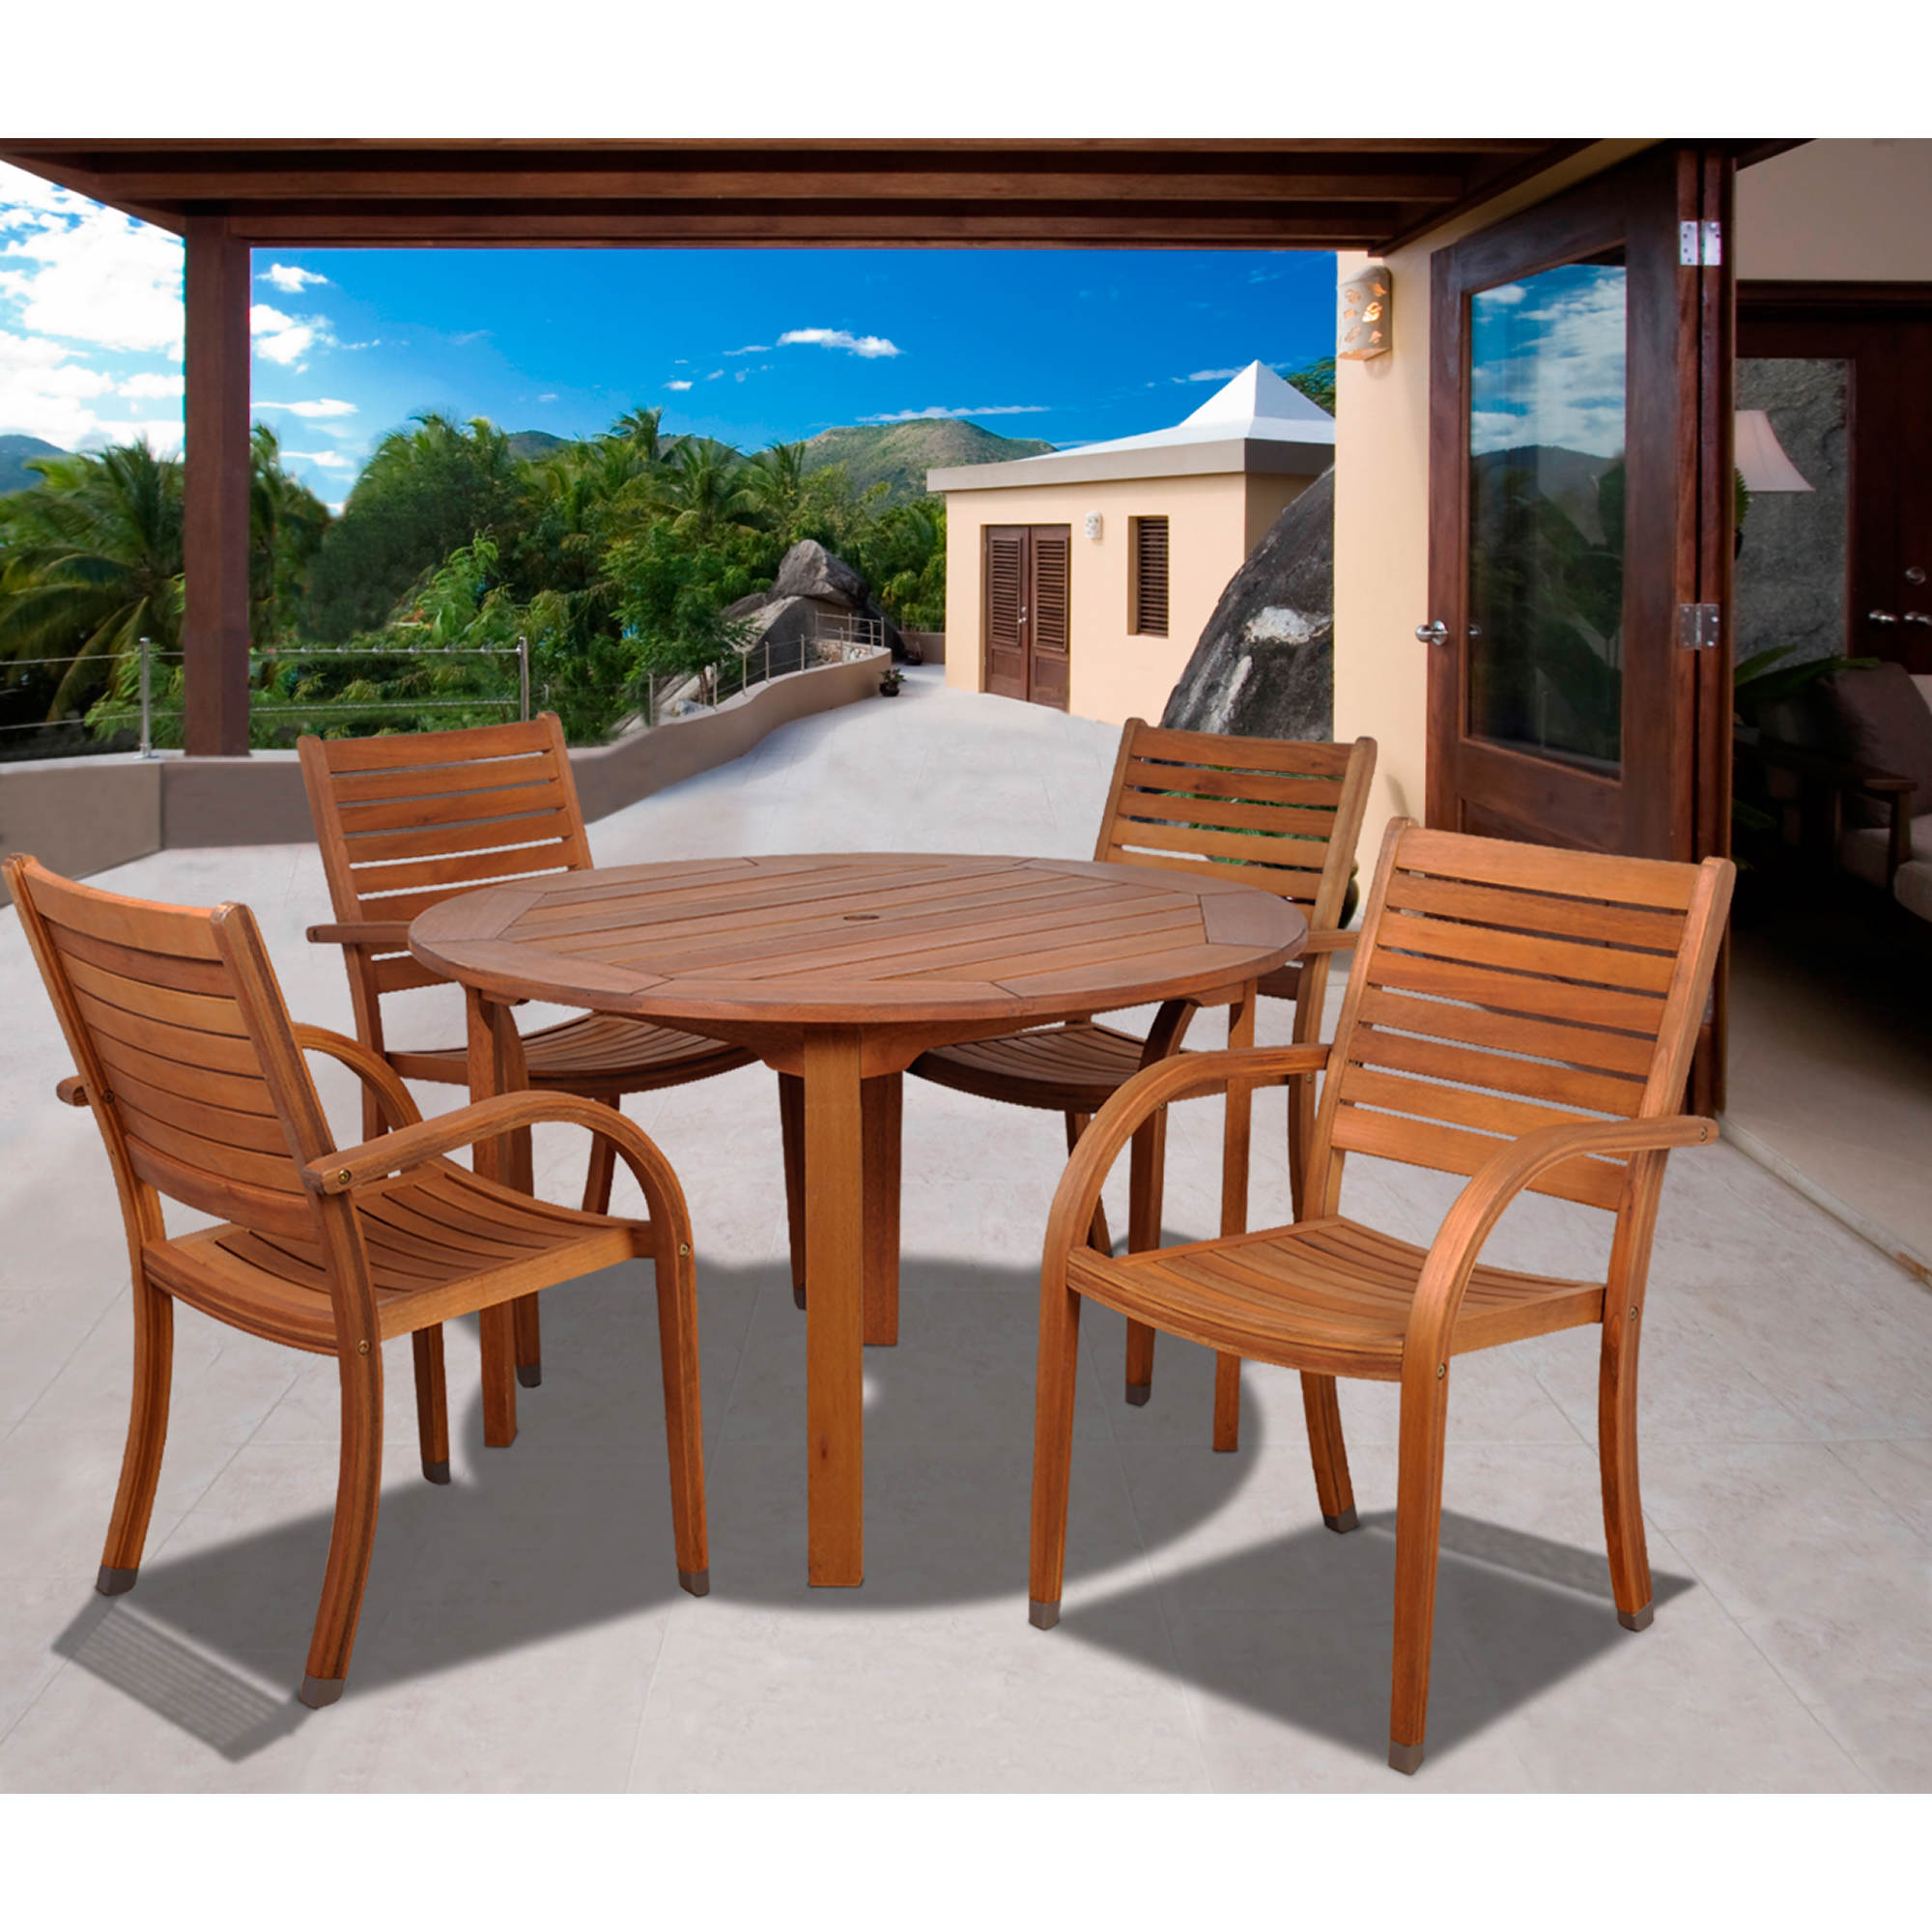 Amazonia Kentucky 5-Pc. Round Eucalyptus Dining Set with Bonus Feron's Wood Sealer/Preservative